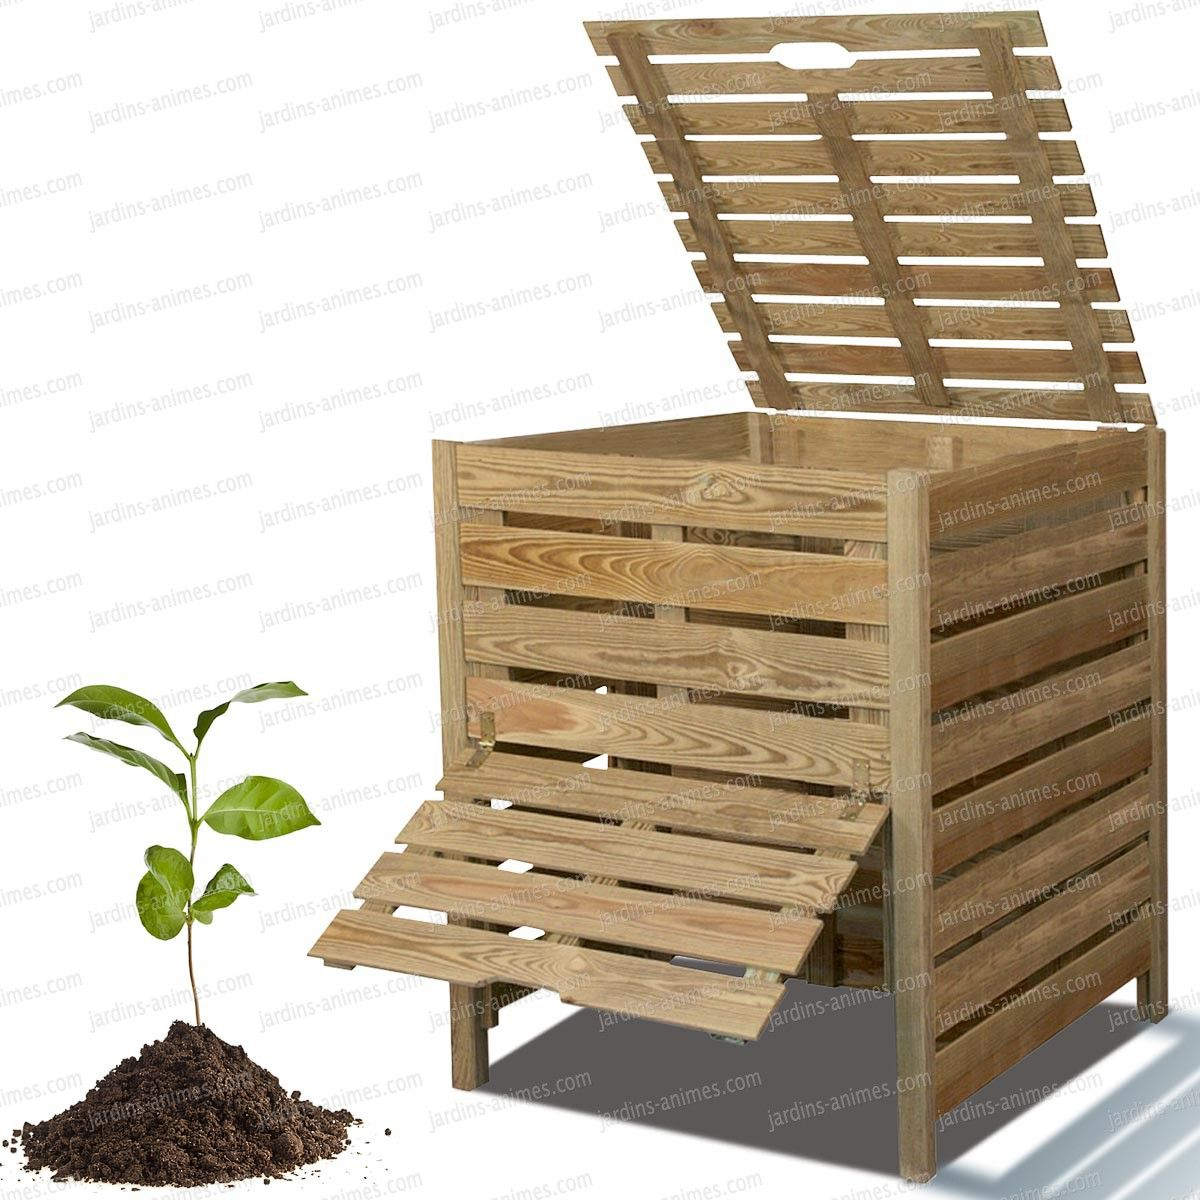 composteur bois 800l en pin trait composting garden ideas and gardens. Black Bedroom Furniture Sets. Home Design Ideas